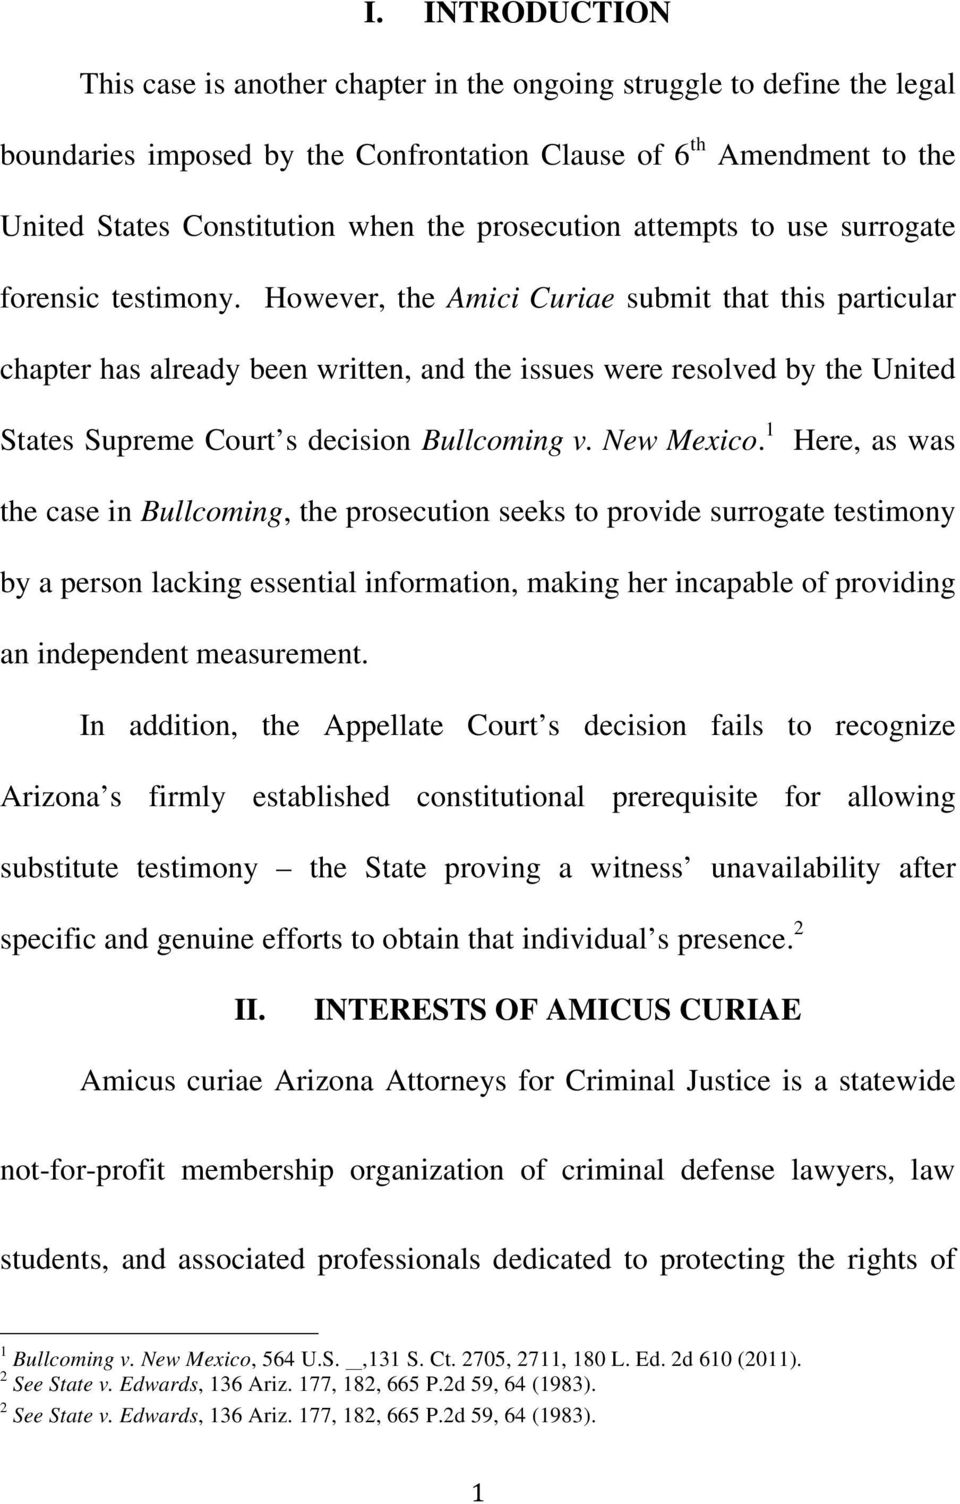 However, the Amici Curiae submit that this particular chapter has already been written, and the issues were resolved by the United States Supreme Court s decision Bullcoming v. New Mexico.